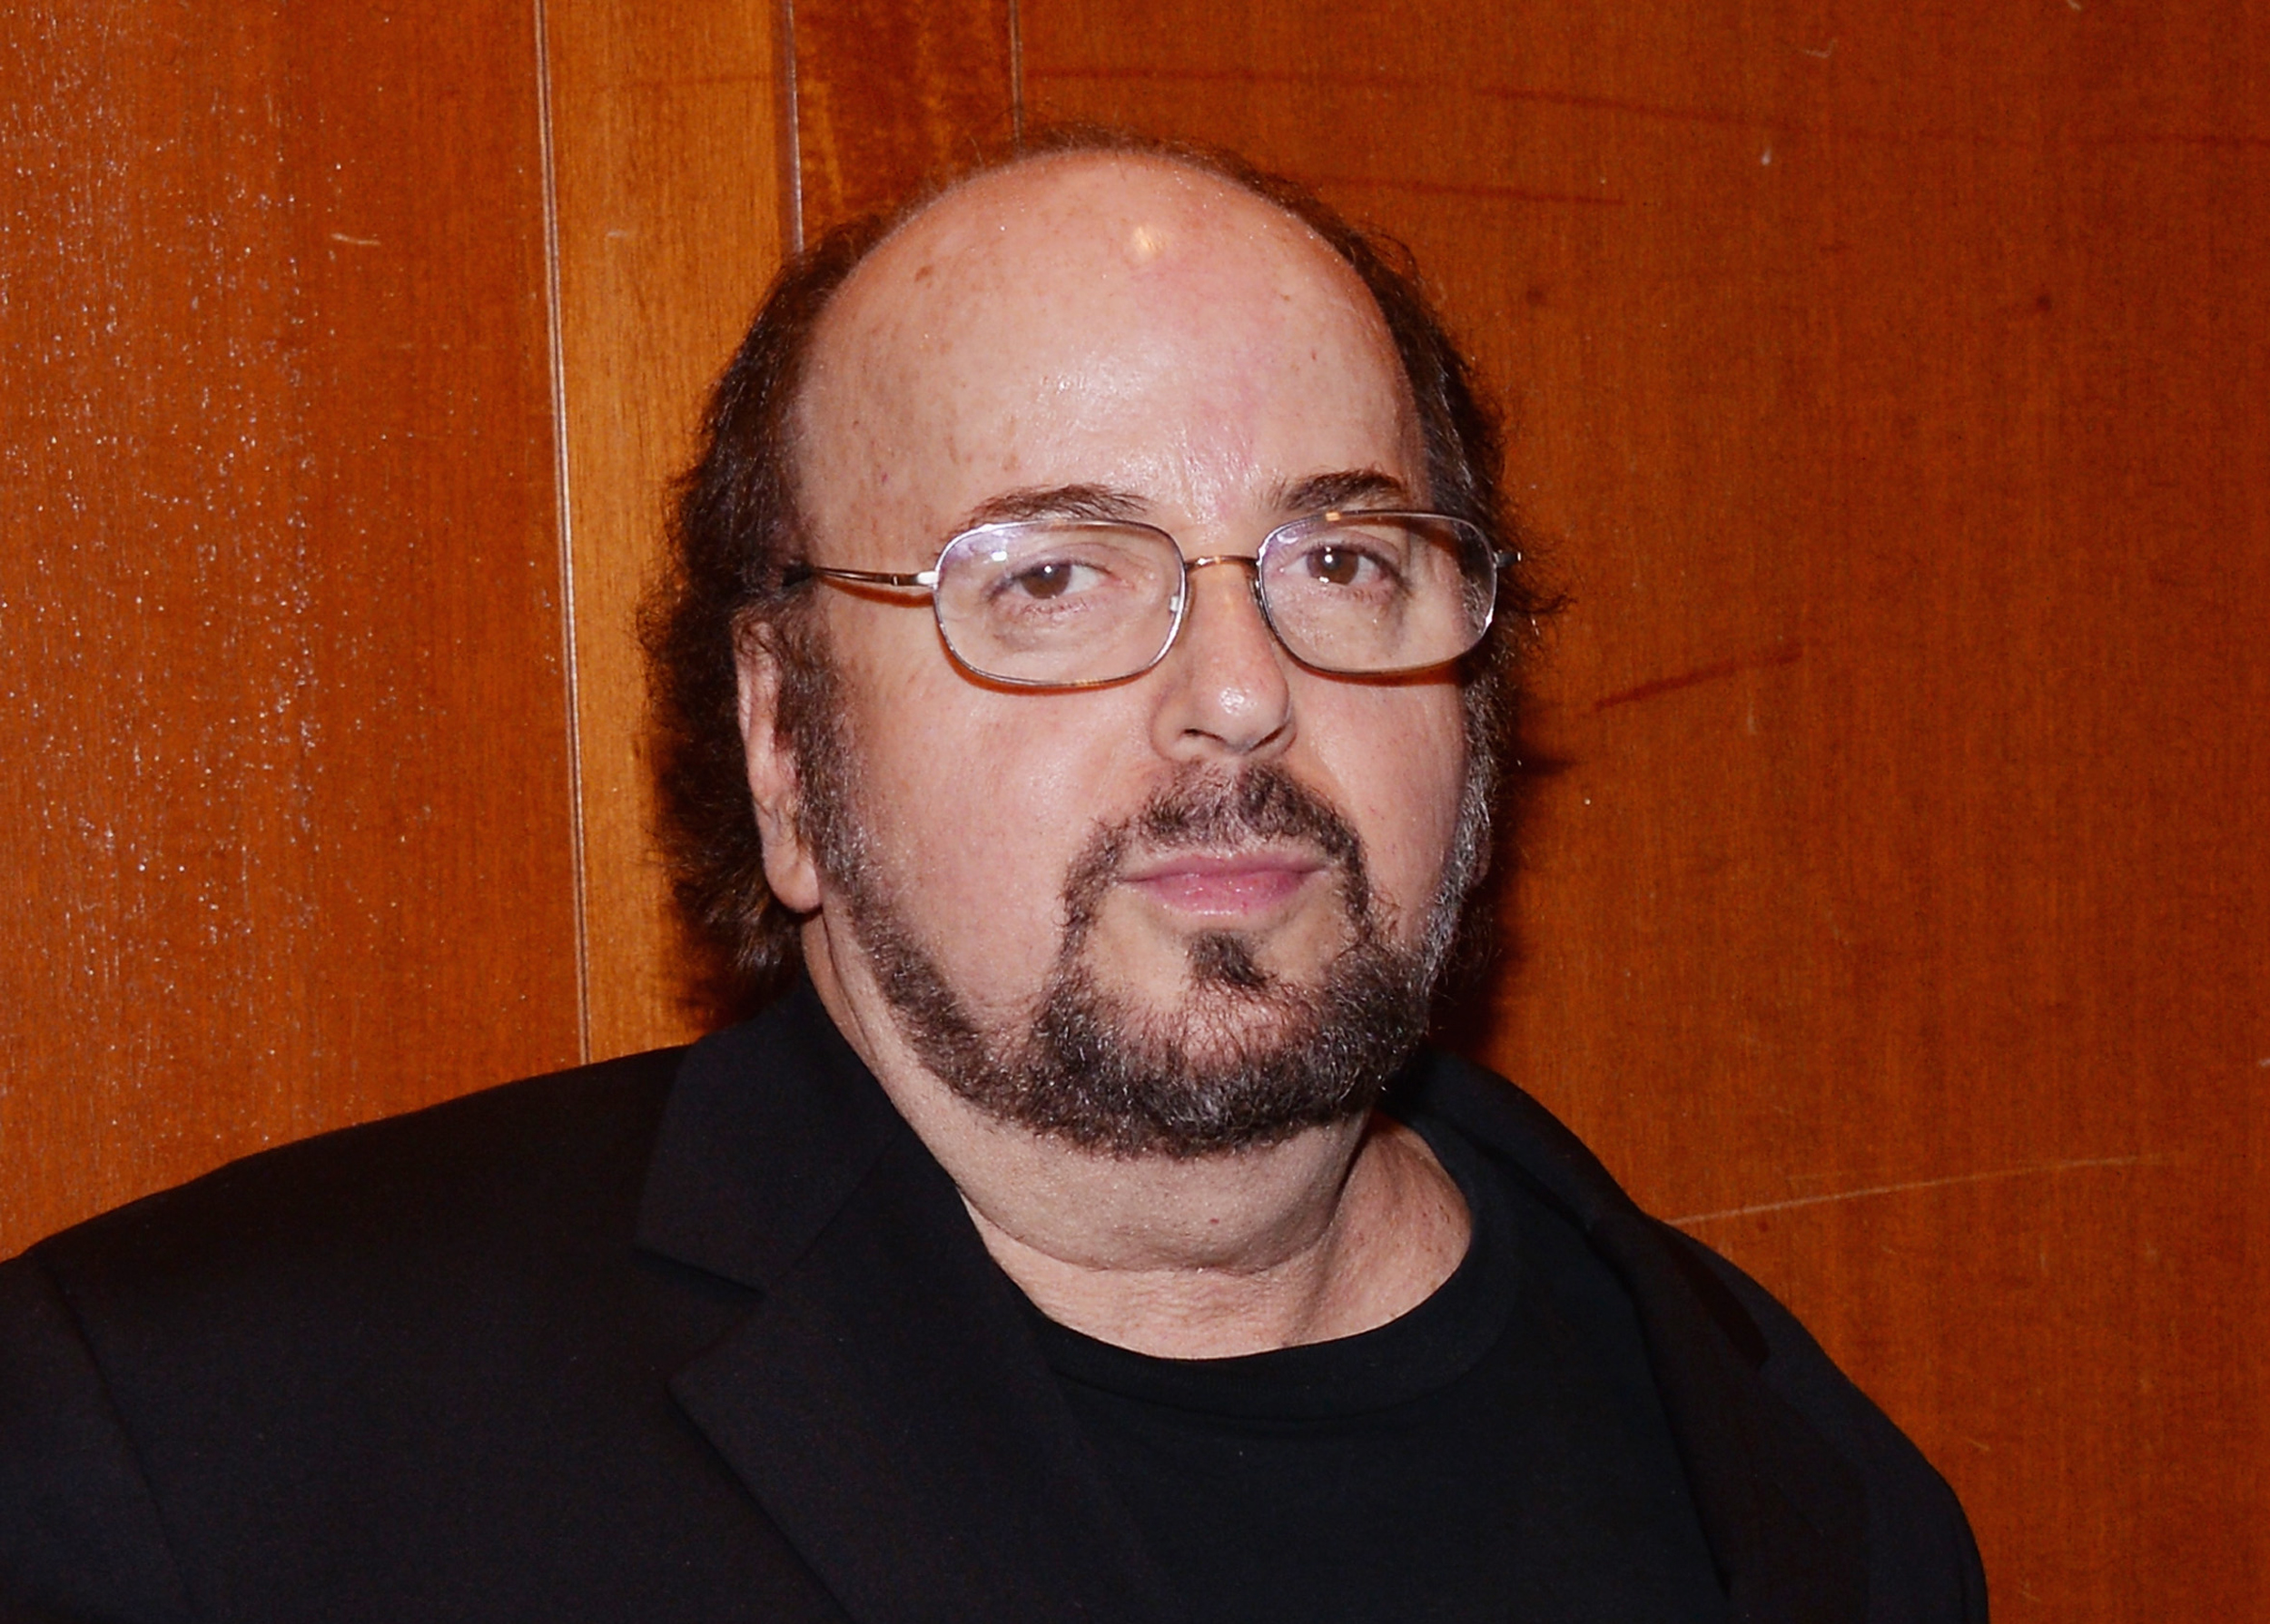 Image: James Toback attends the New York premiere of the HBO documentary film